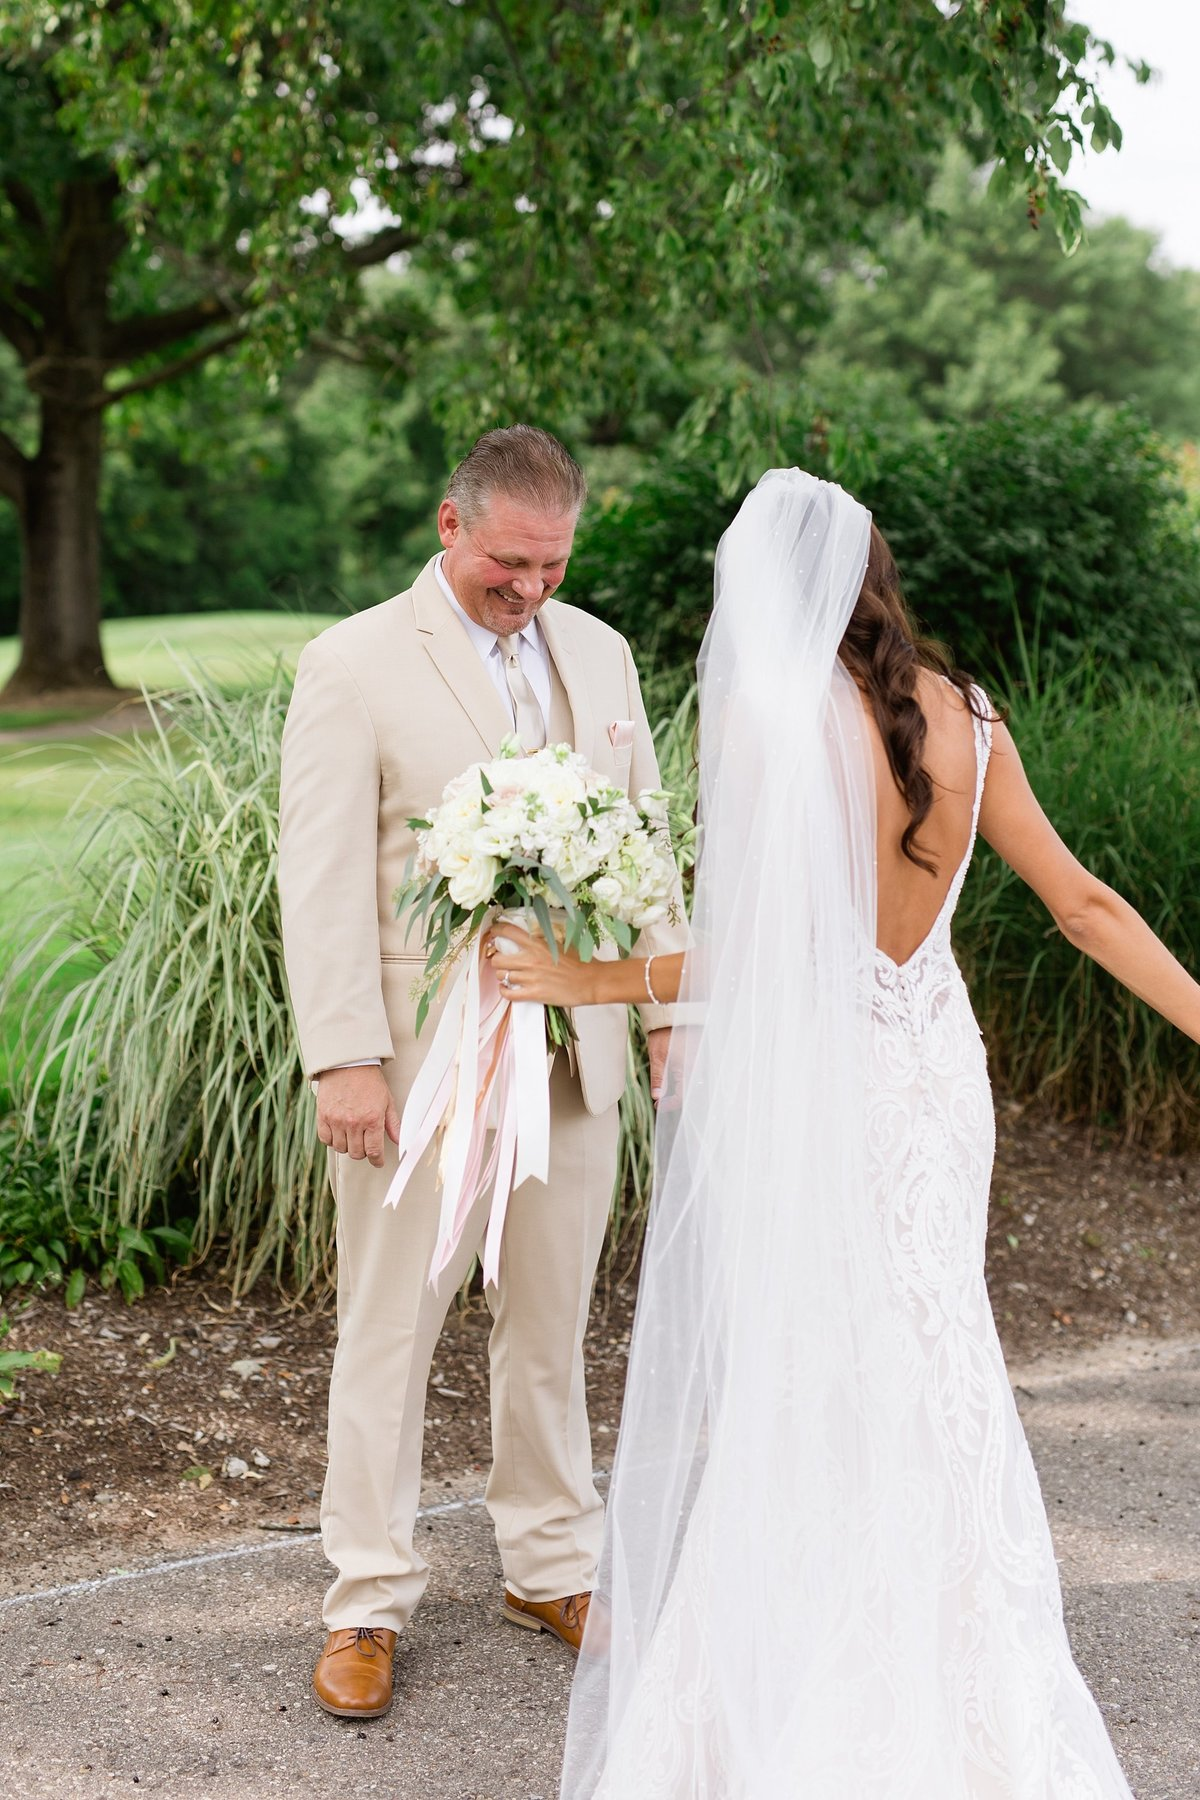 Lauren-Nate-Paint-Creek-Country-Club-Wedding-Michigan-Breanne-Rochelle-Photography29